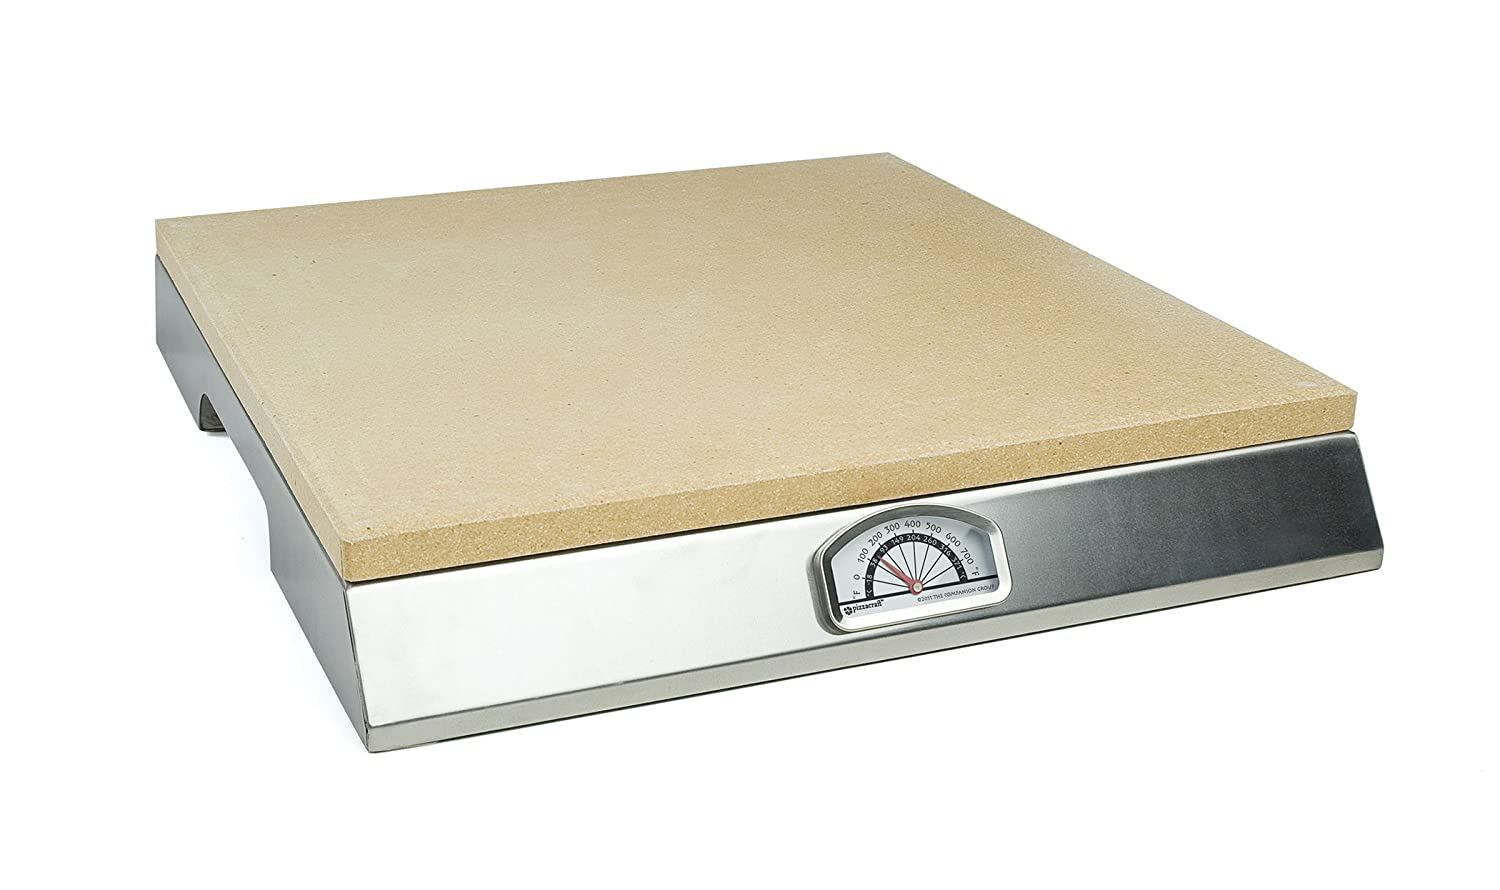 Pizzacraft Pizza Stone with Built-In Thermometer Base - PC0106